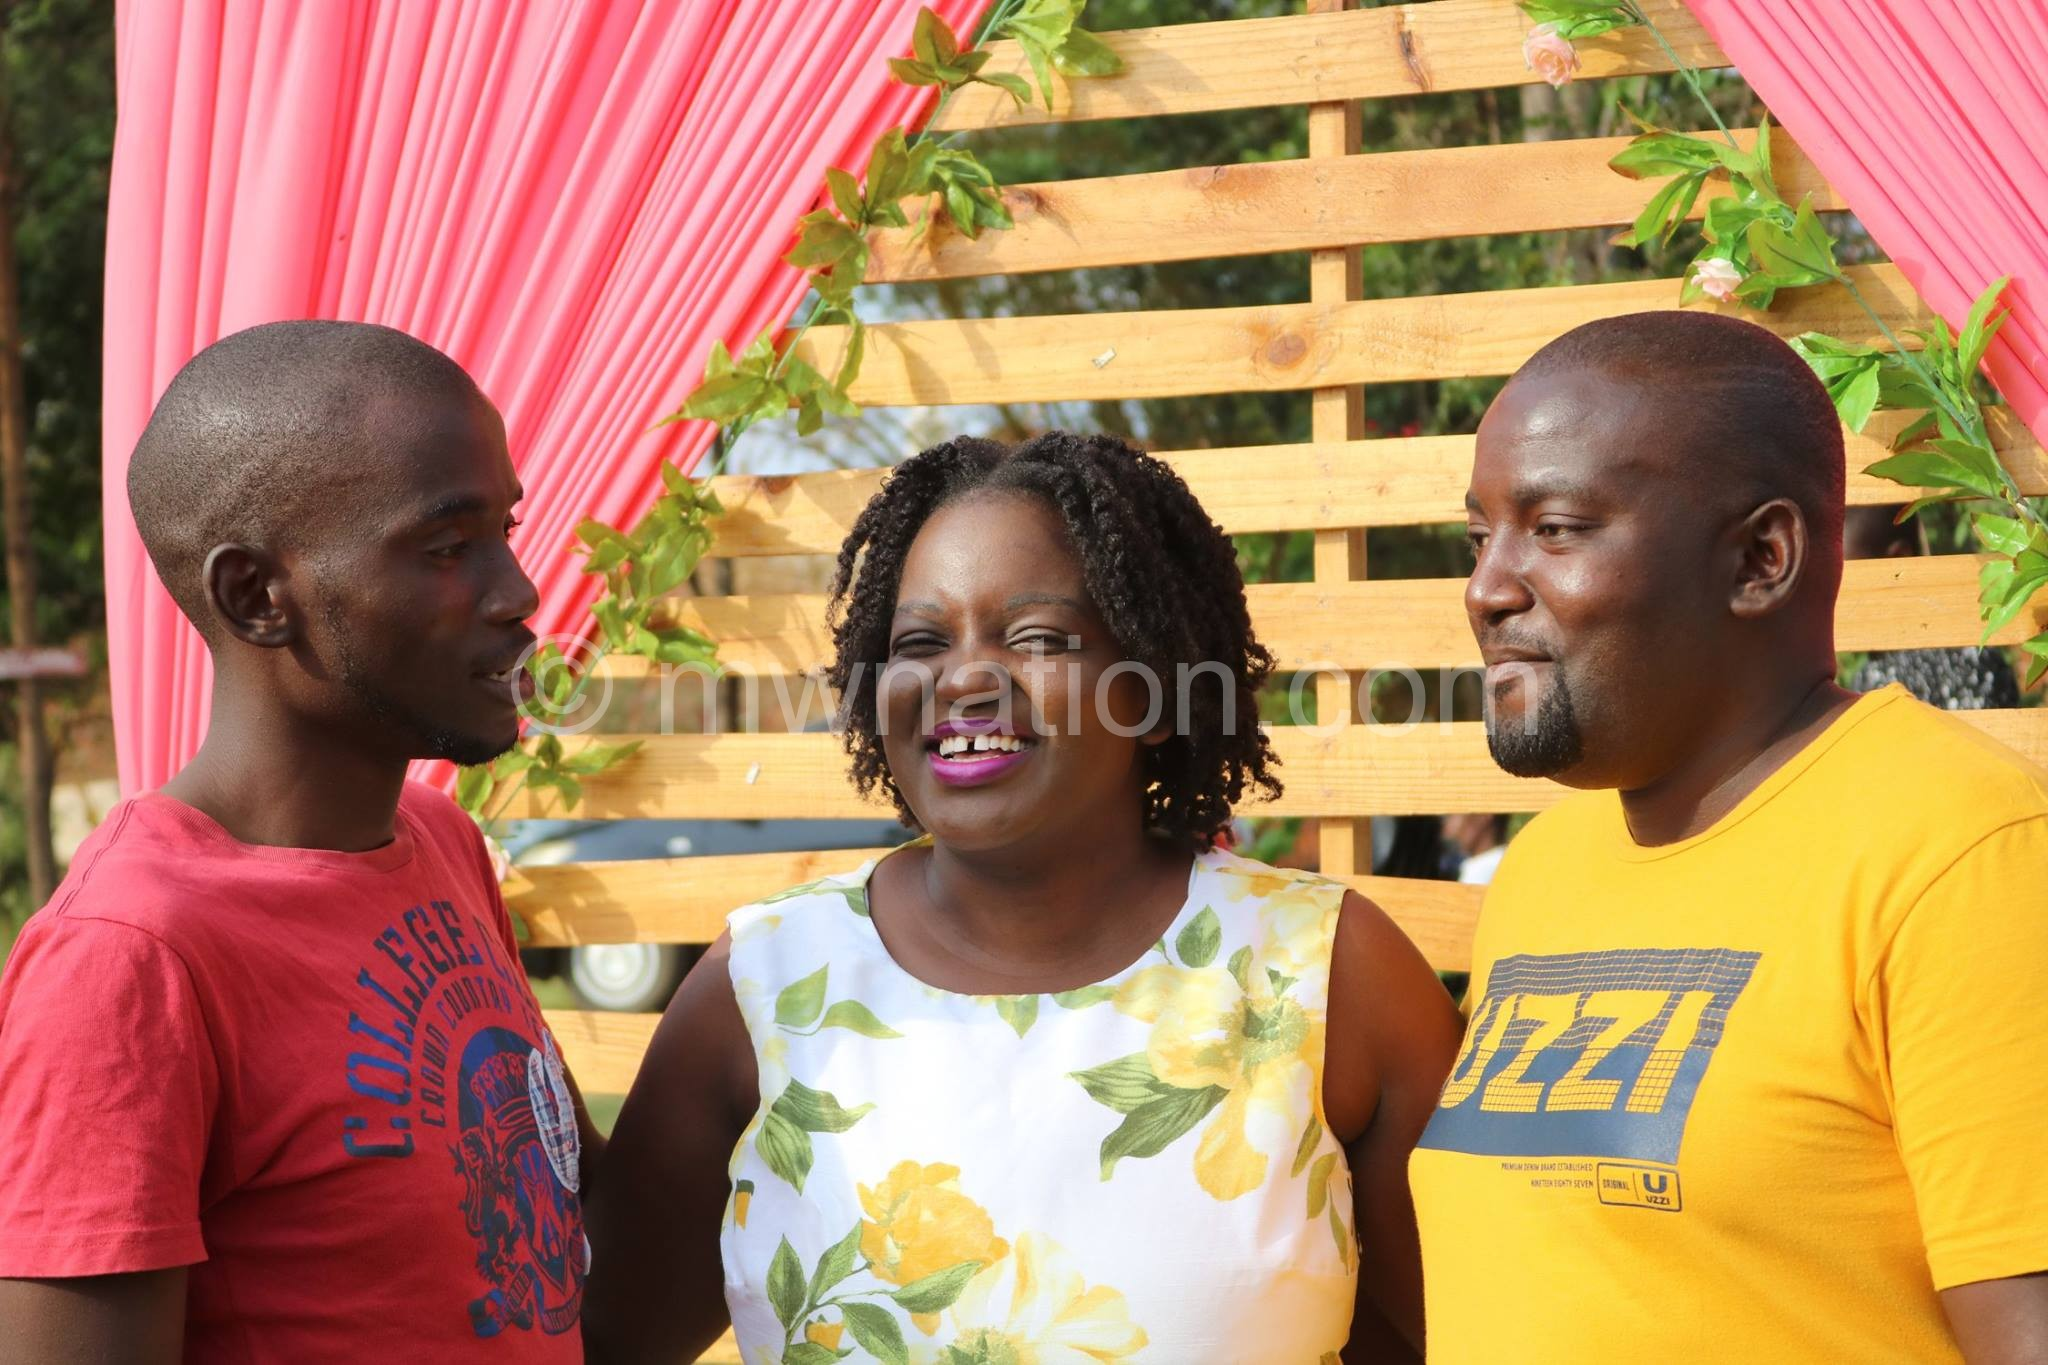 Kaboni with brothers   The Nation Online